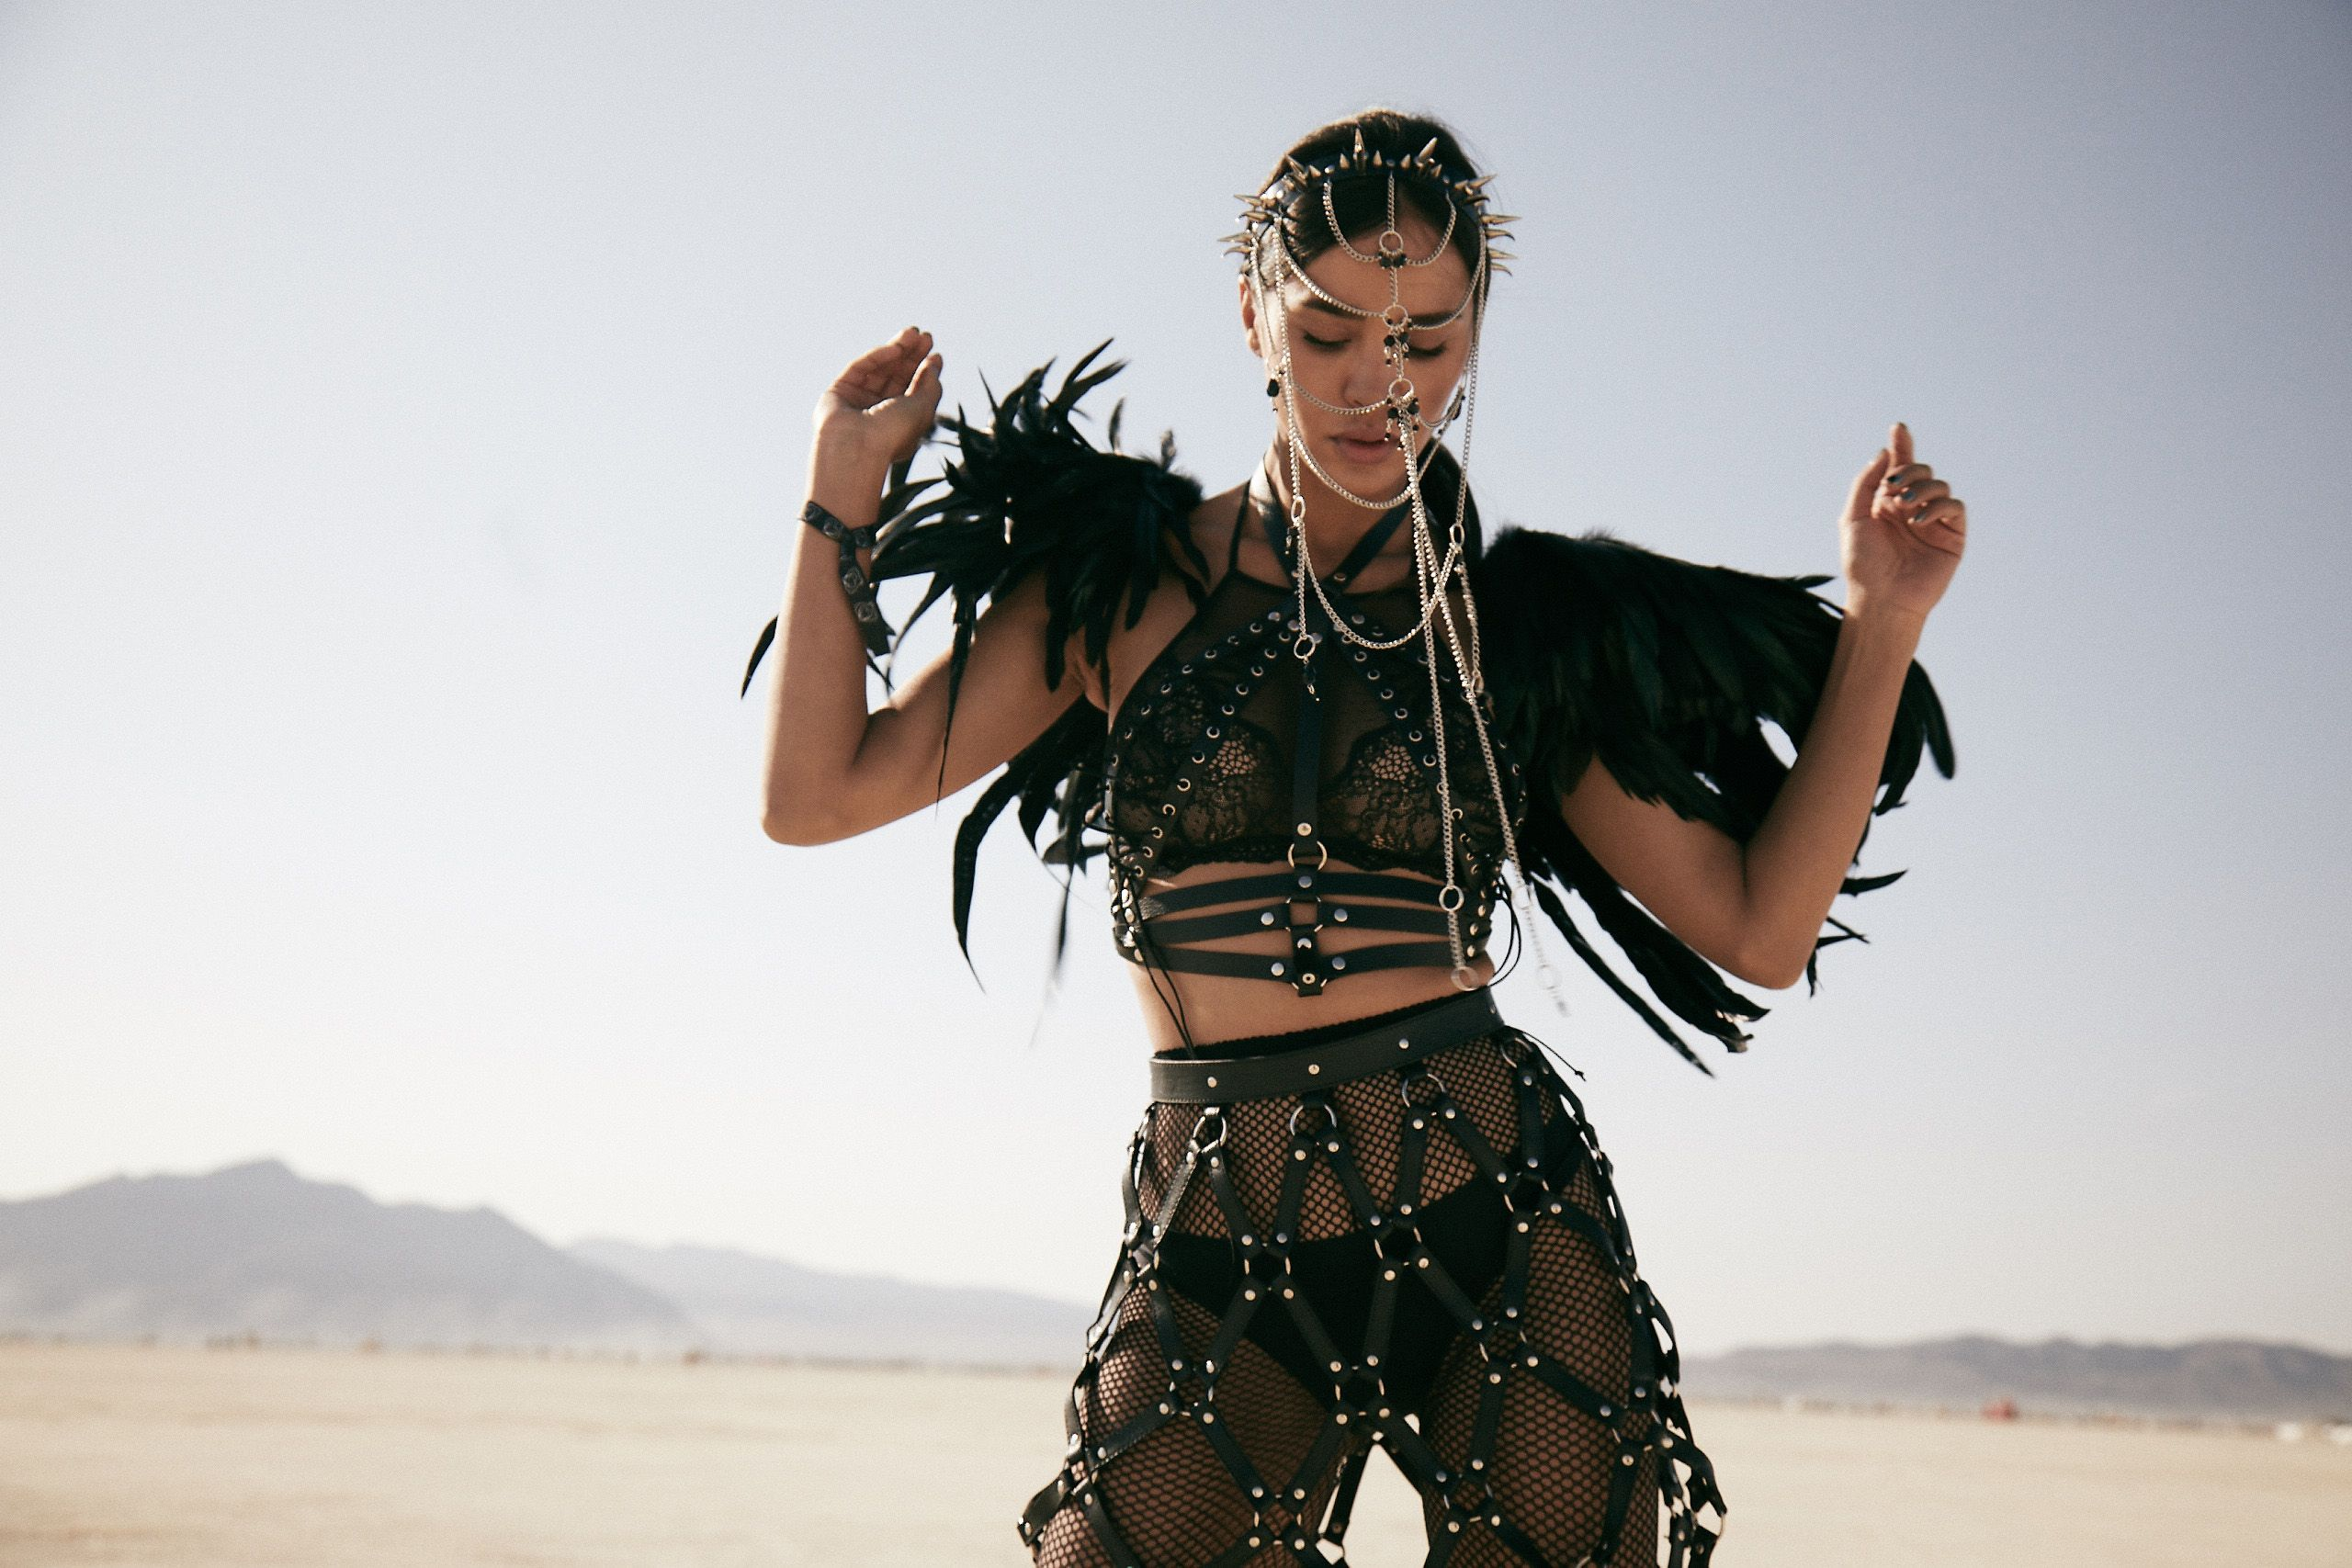 The Most Insane Fashion Looks From Burning Man 2018